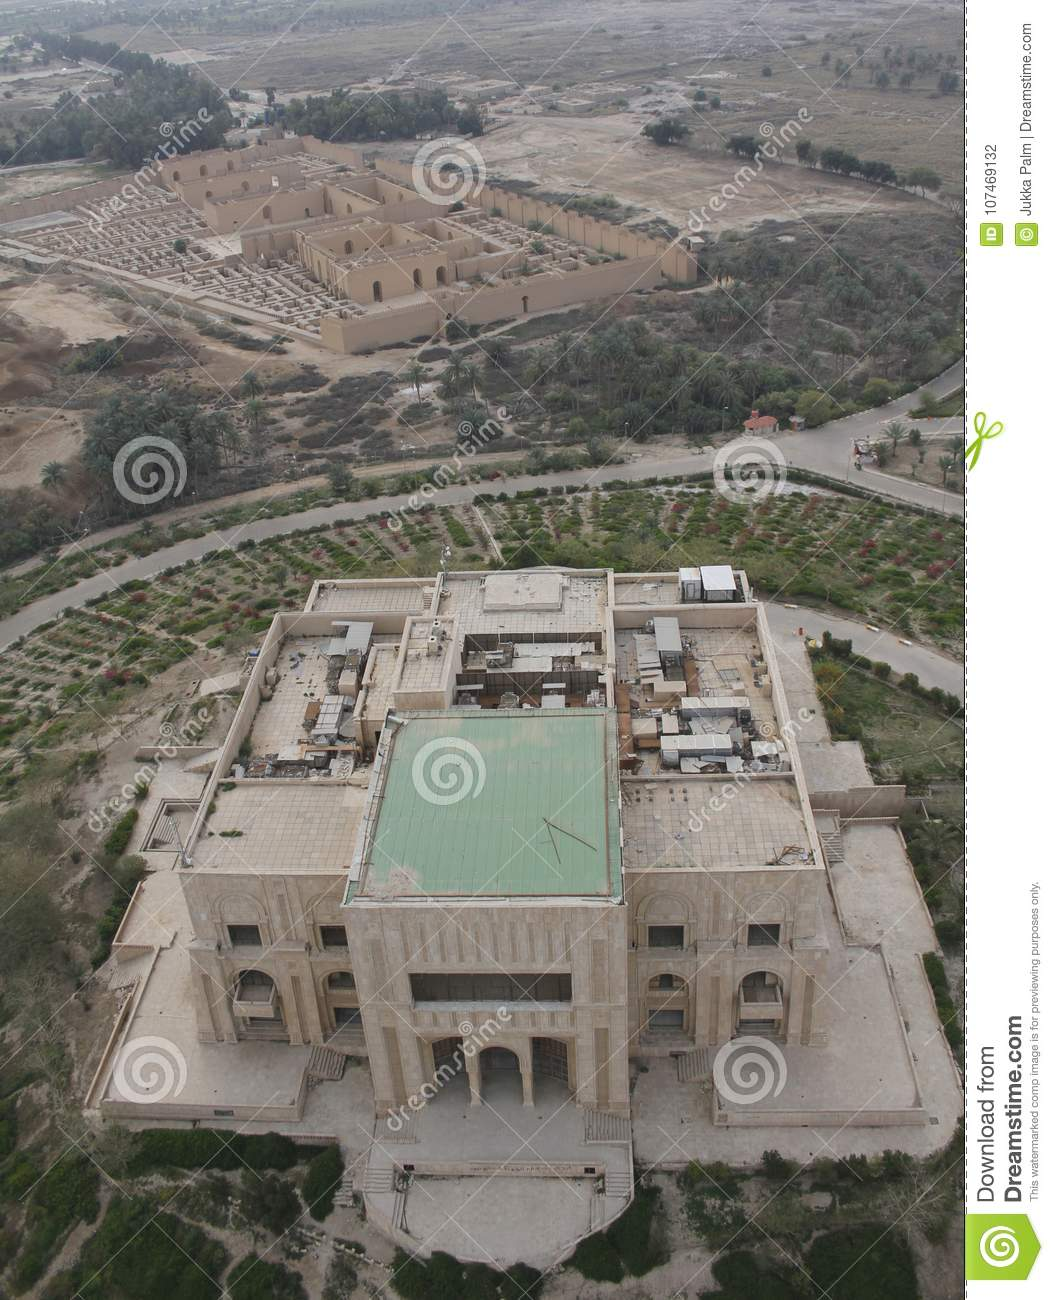 Ancient babylon in iraq from air. Stock photo image of building.